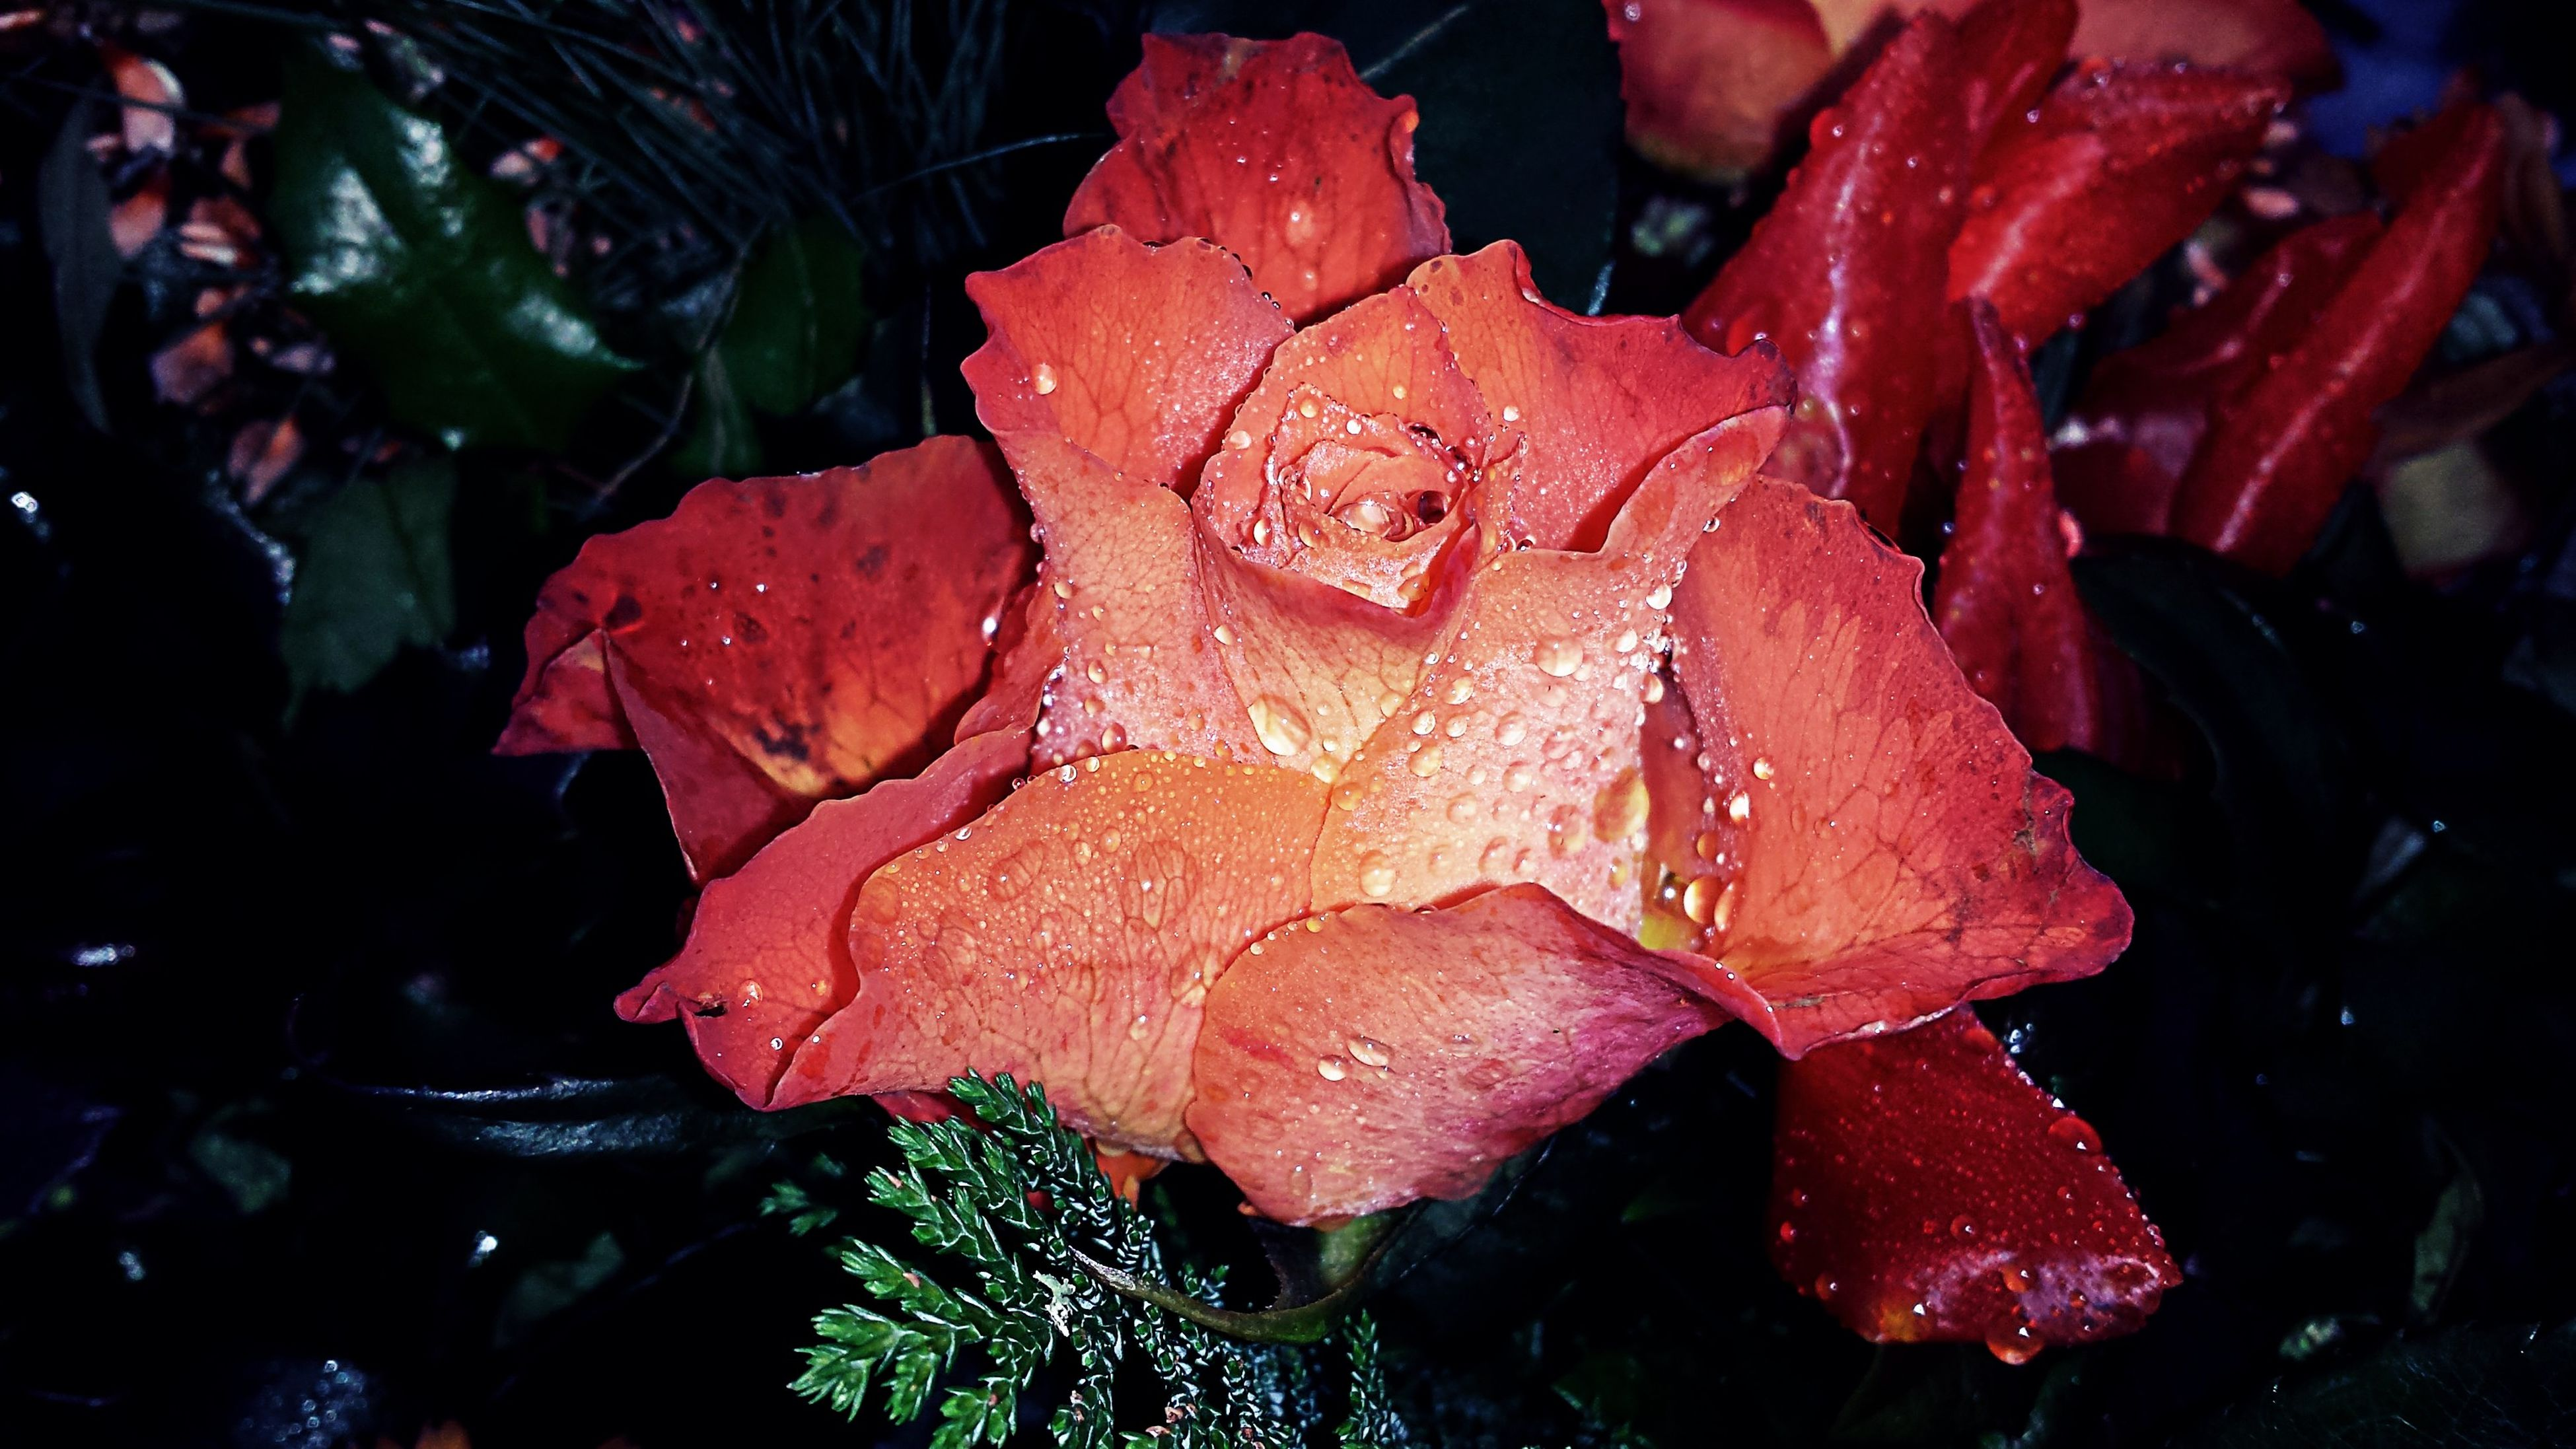 drop, leaf, wet, water, red, close-up, freshness, growth, fragility, season, beauty in nature, nature, plant, rain, dew, weather, raindrop, flower, petal, leaves